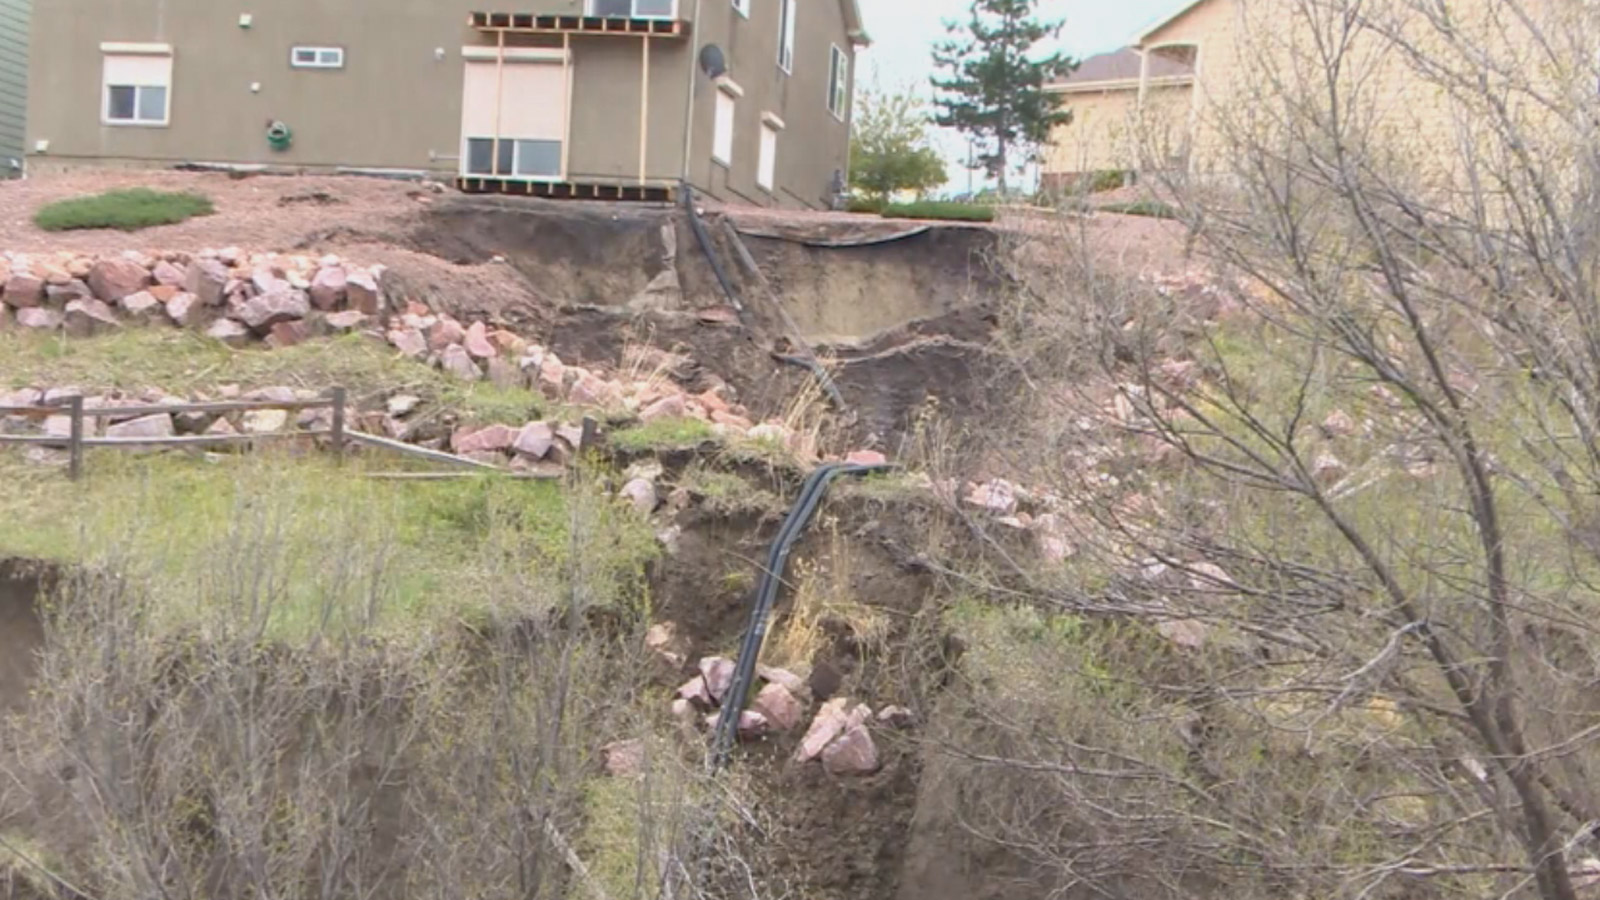 Heavy spring rains have caused landslides in and around portions of Colorado Springs. (credit: CBS)